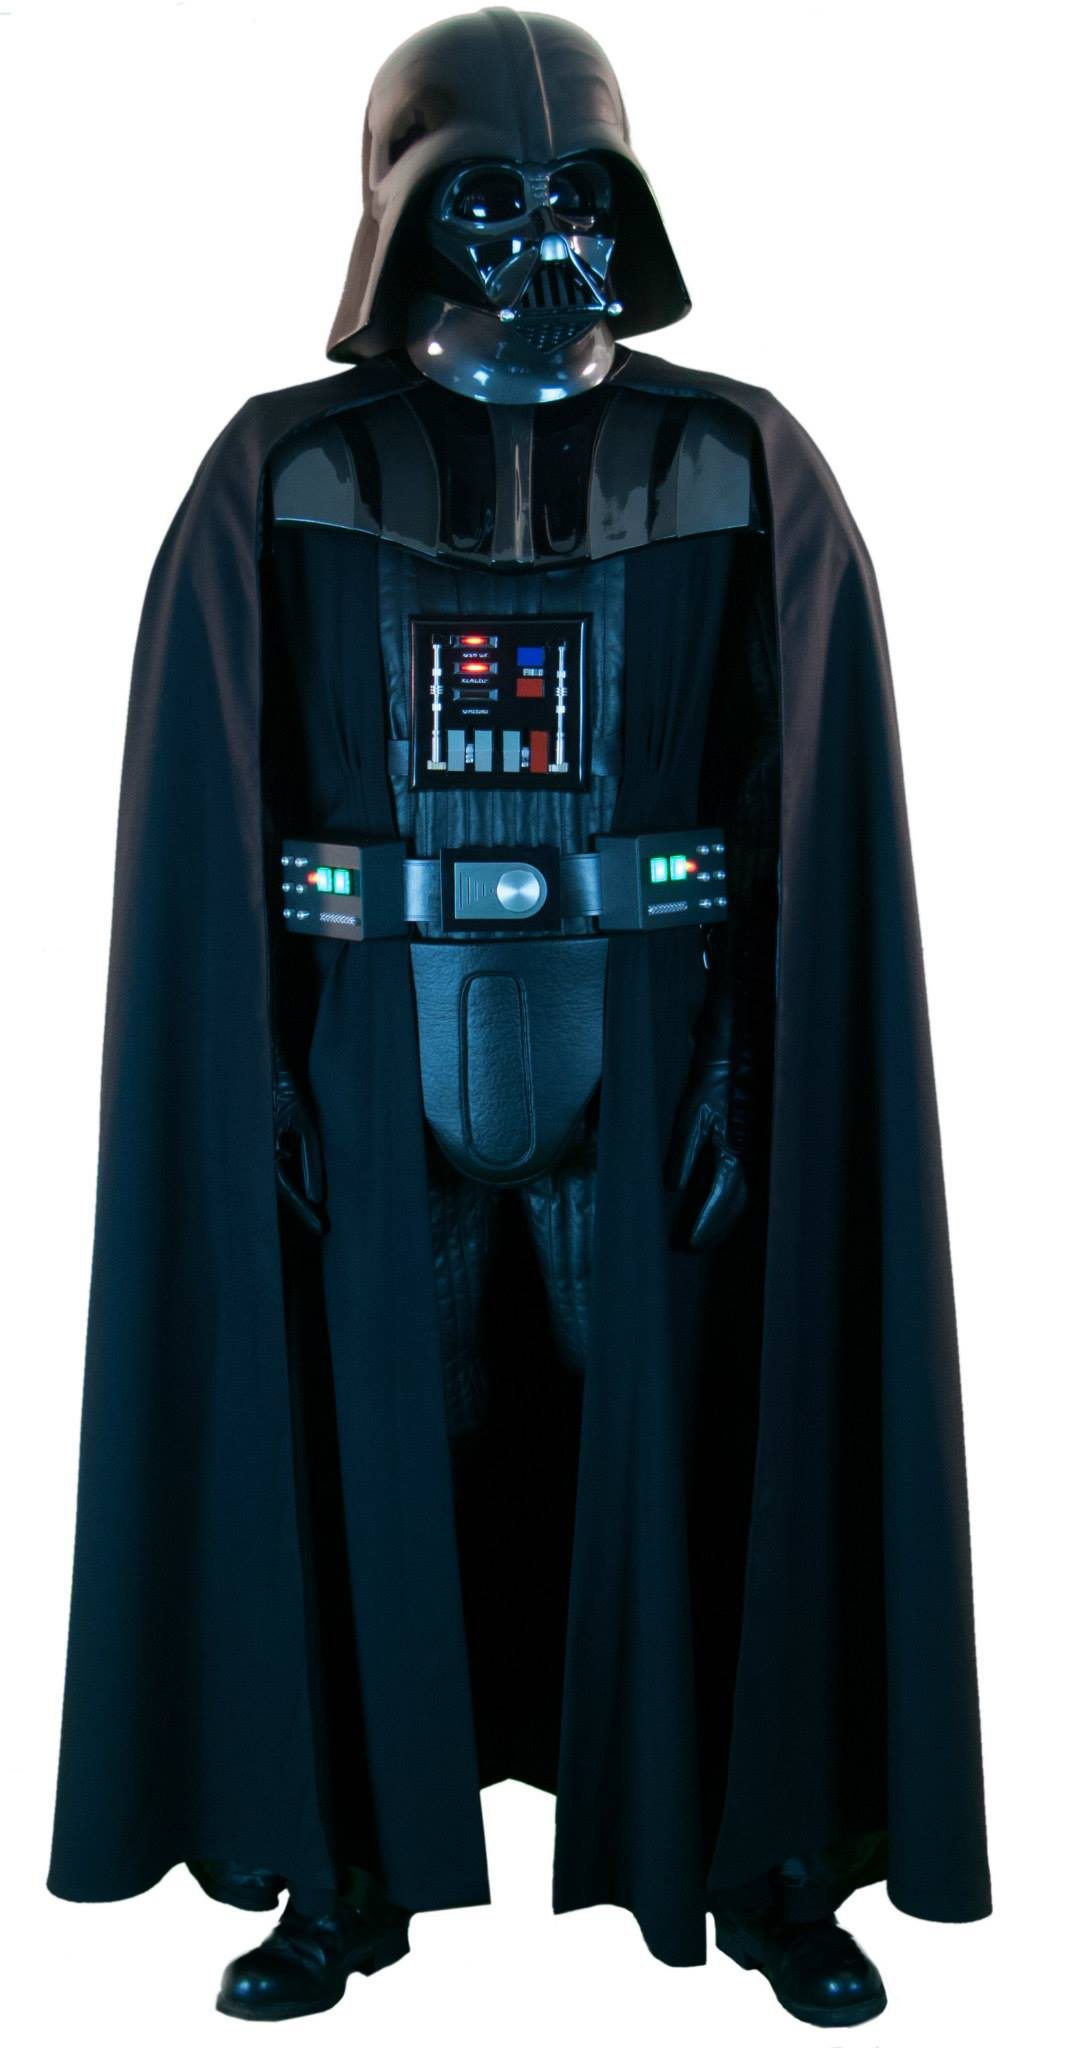 Anovos Stunning Darth Vader Costume Exclusive Reveal